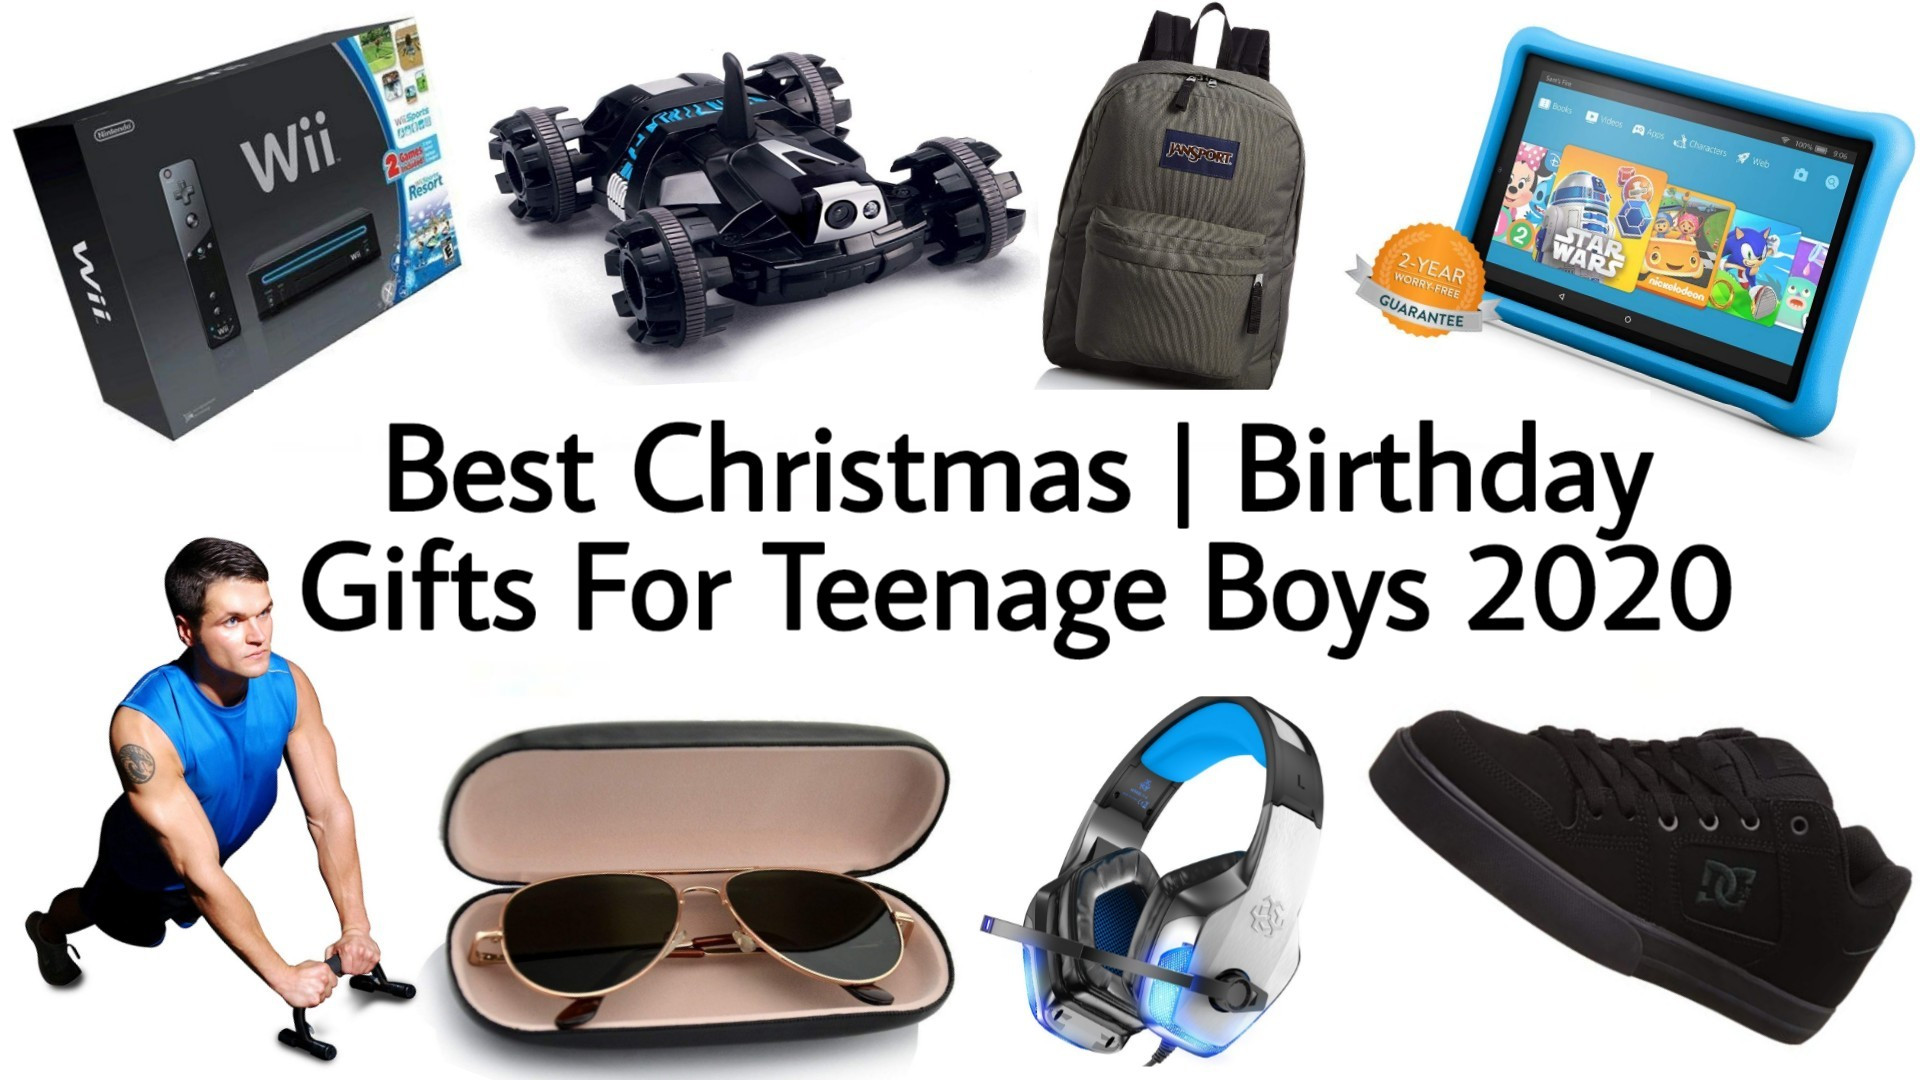 Top Christmas Gift Ideas 2020  Best Christmas Gifts for Teenage Boys 2020